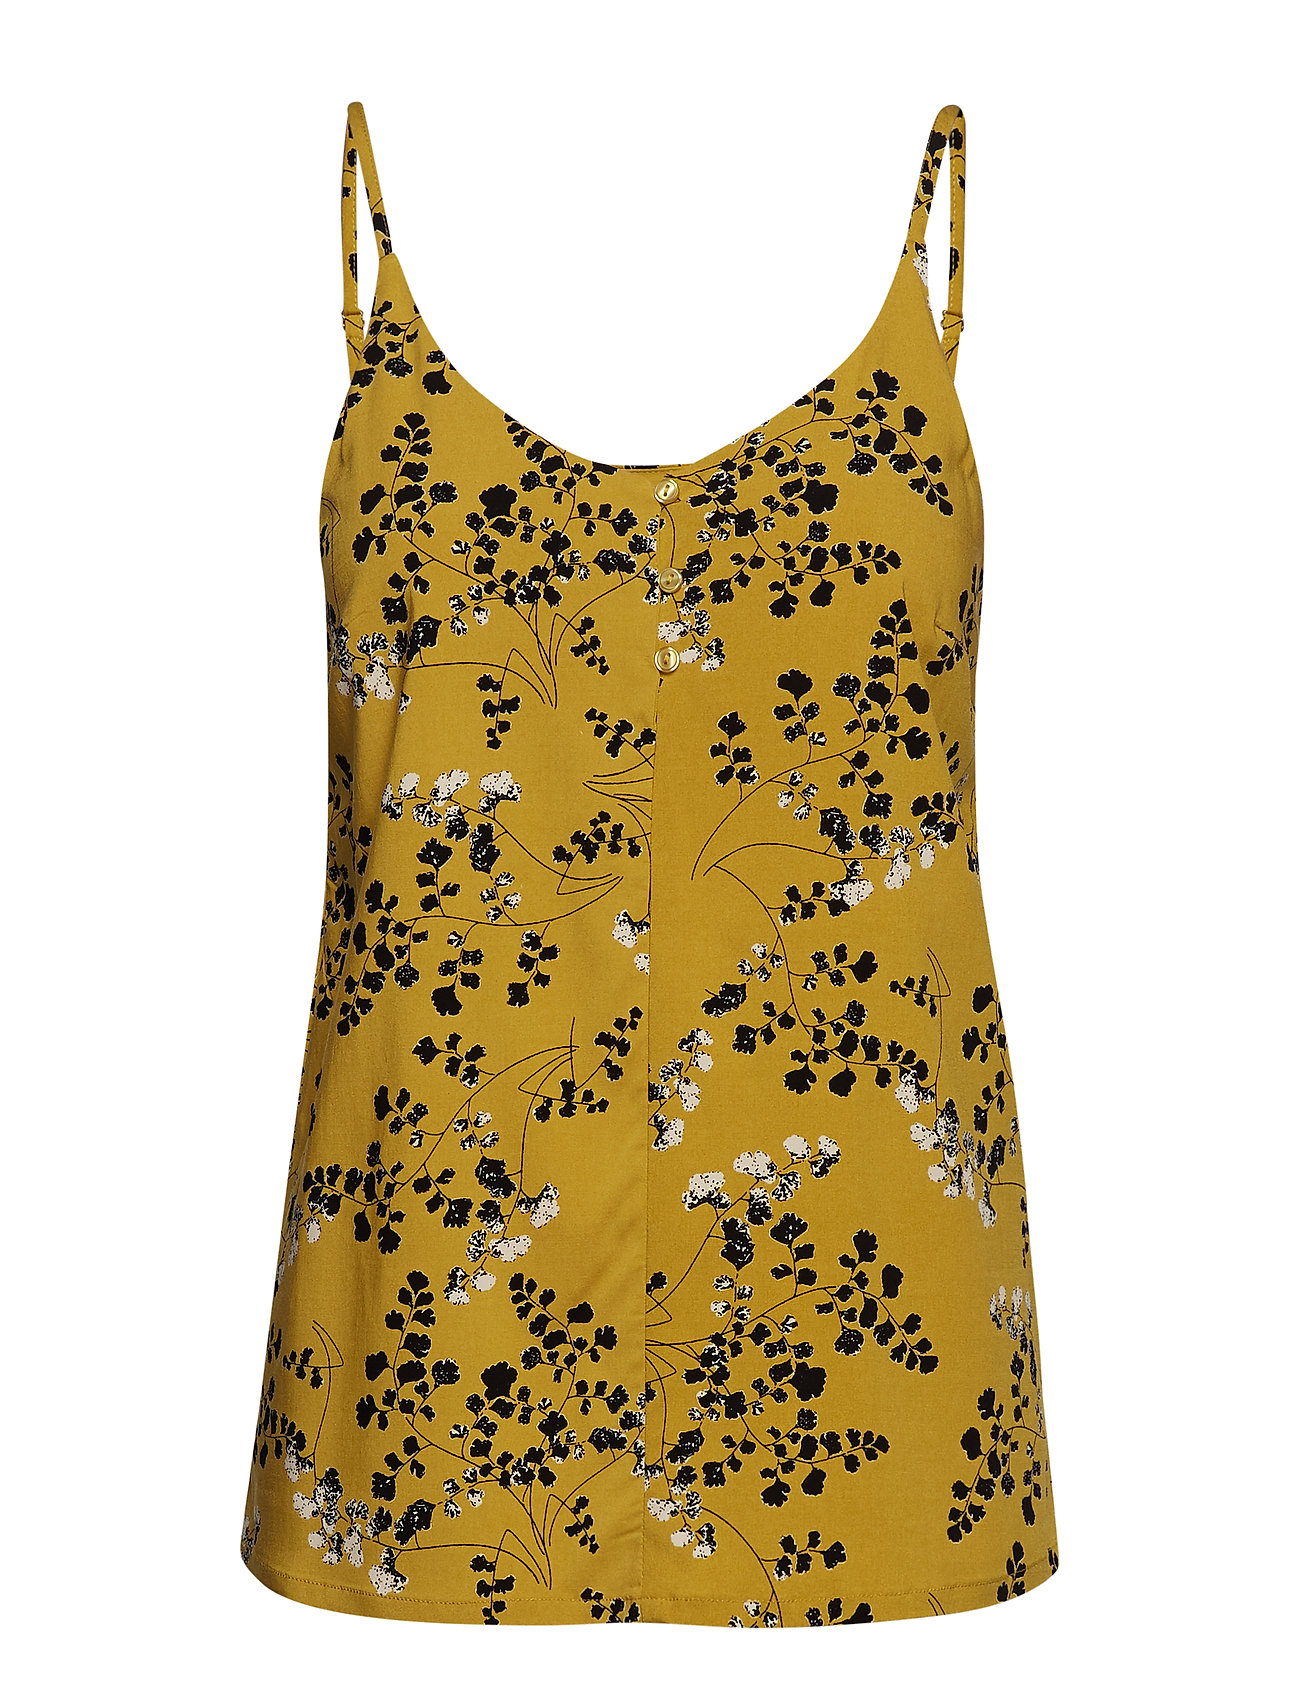 Soft Rebels Karoline Strap Top - LEAF PRINT - CEYLON YELLOW